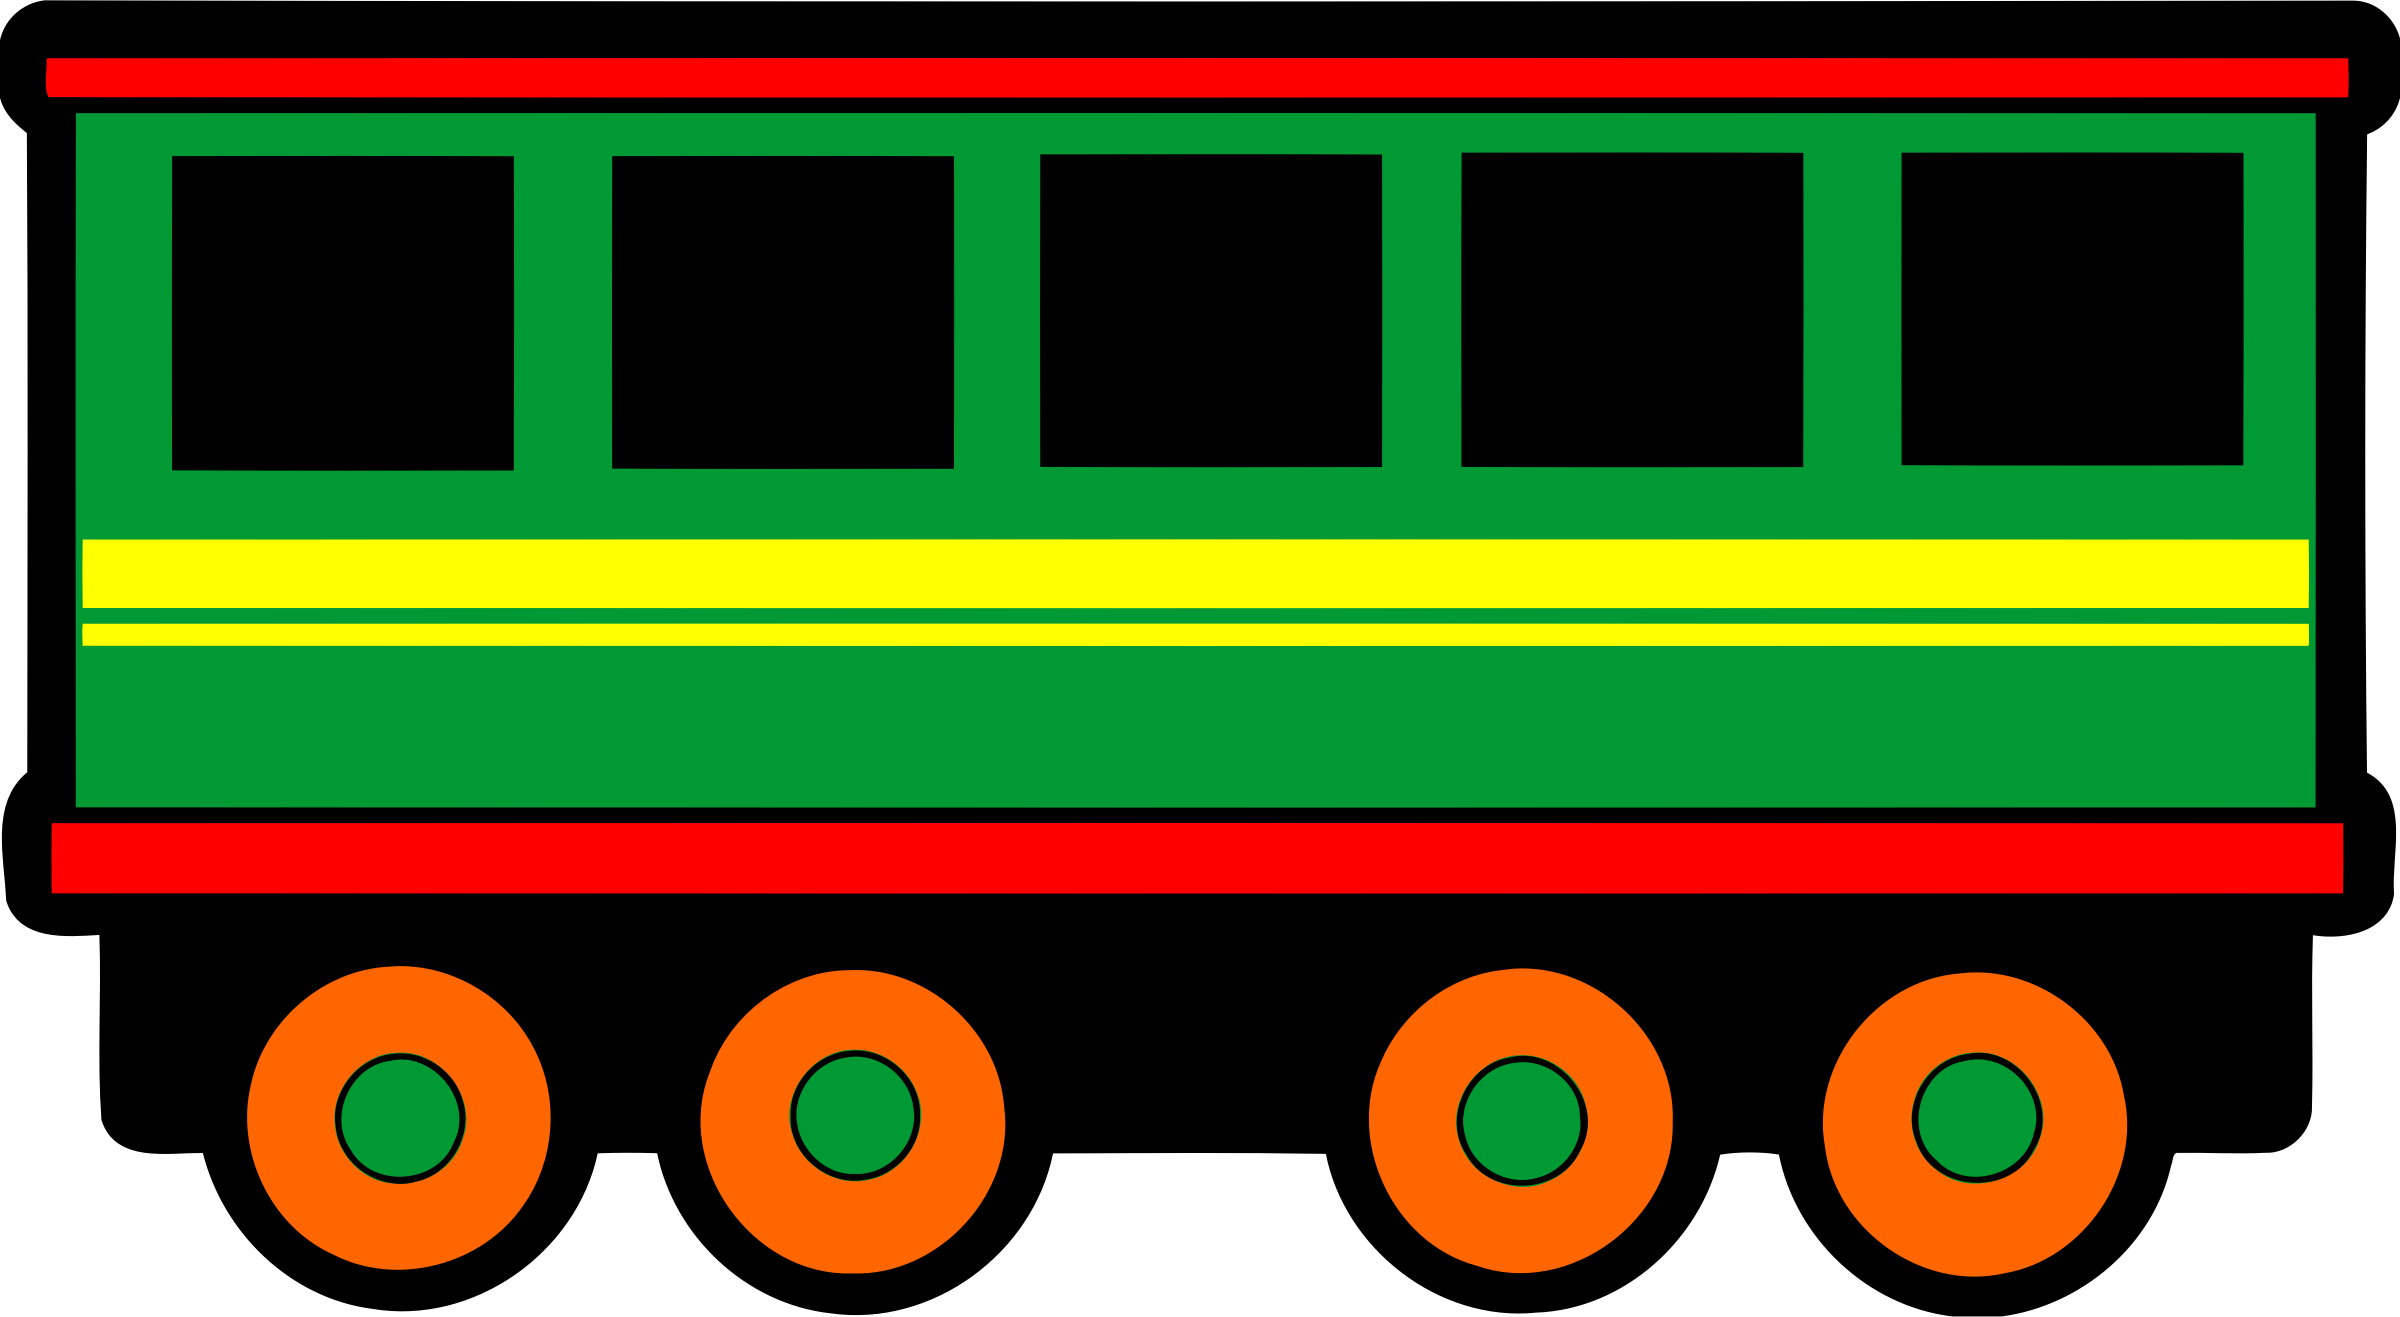 Railroad car clipart graphic royalty free library Clipart - Railway carriage (colour) graphic royalty free library